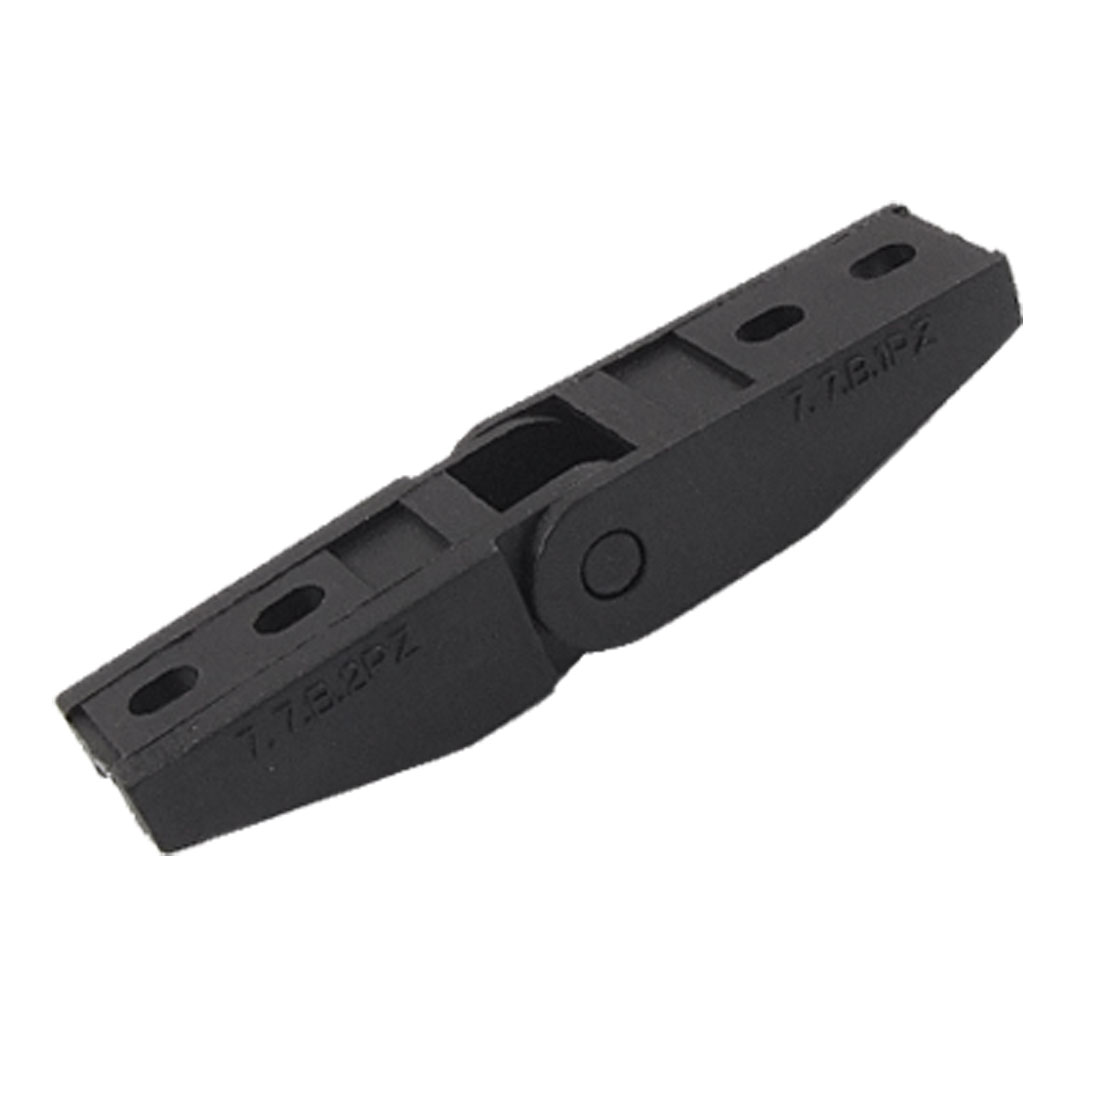 Drag Chain Cable Carrier Connector Adapter 7mm x 7mm Black